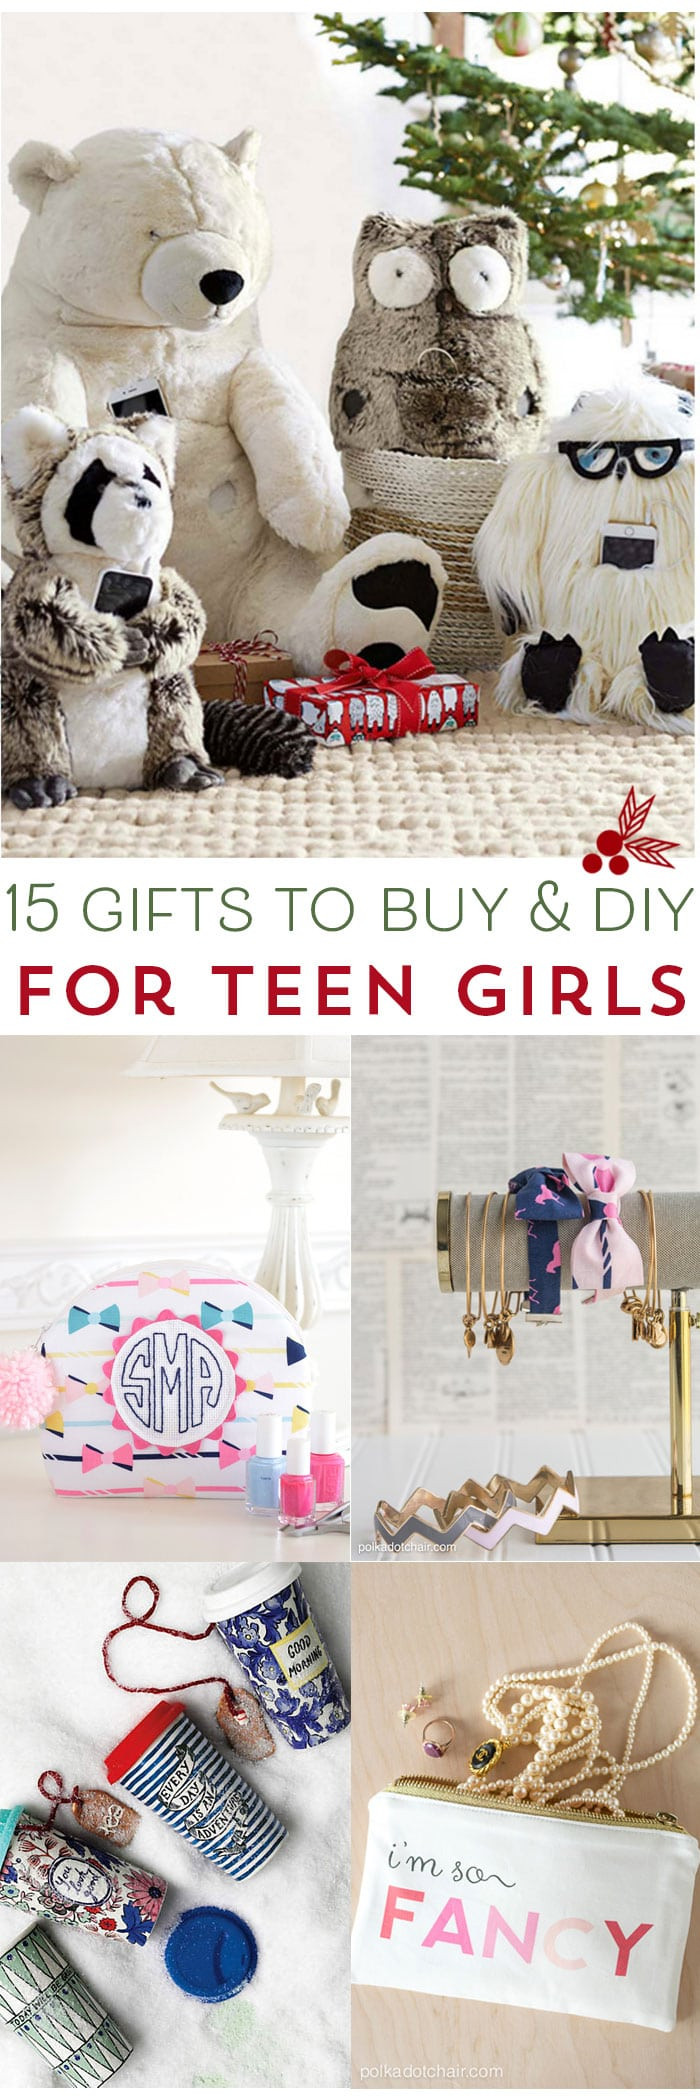 Diy Gift Ideas For Girls  15 Gifts for Teen Girls to DIY and Buy The Polka Dot Chair